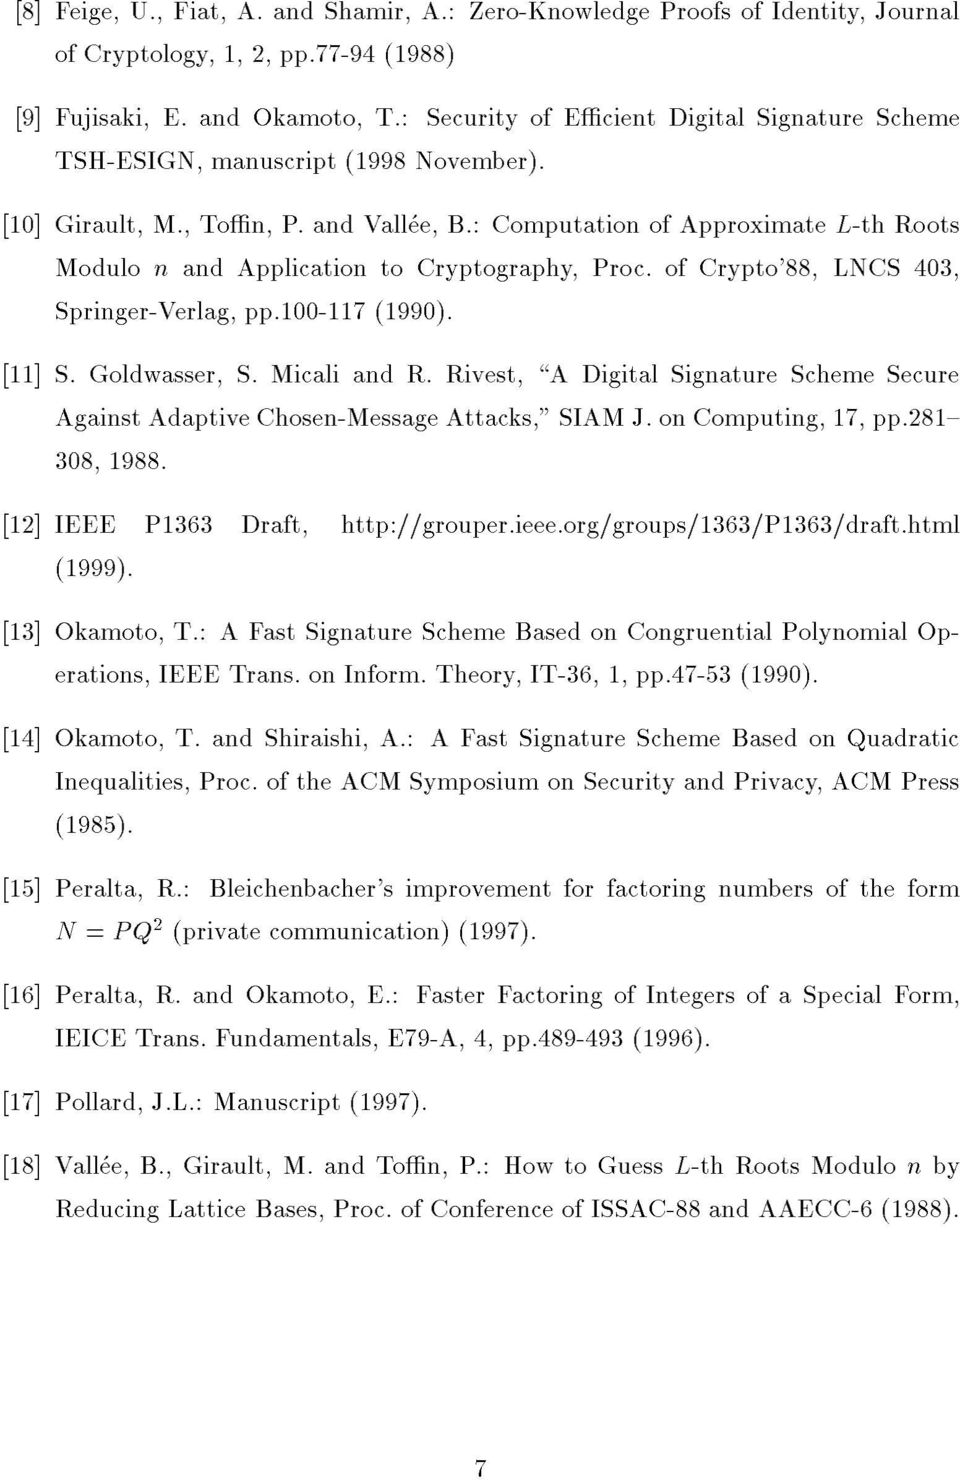 : Computation of Approximate L-th Roots Modulo n and Application to Cryptography, Proc. of Crypto'88, LNCS 403, Springer-Verlag, pp.100-117 (1990). [11] S. Goldwasser, S. Micali and R.